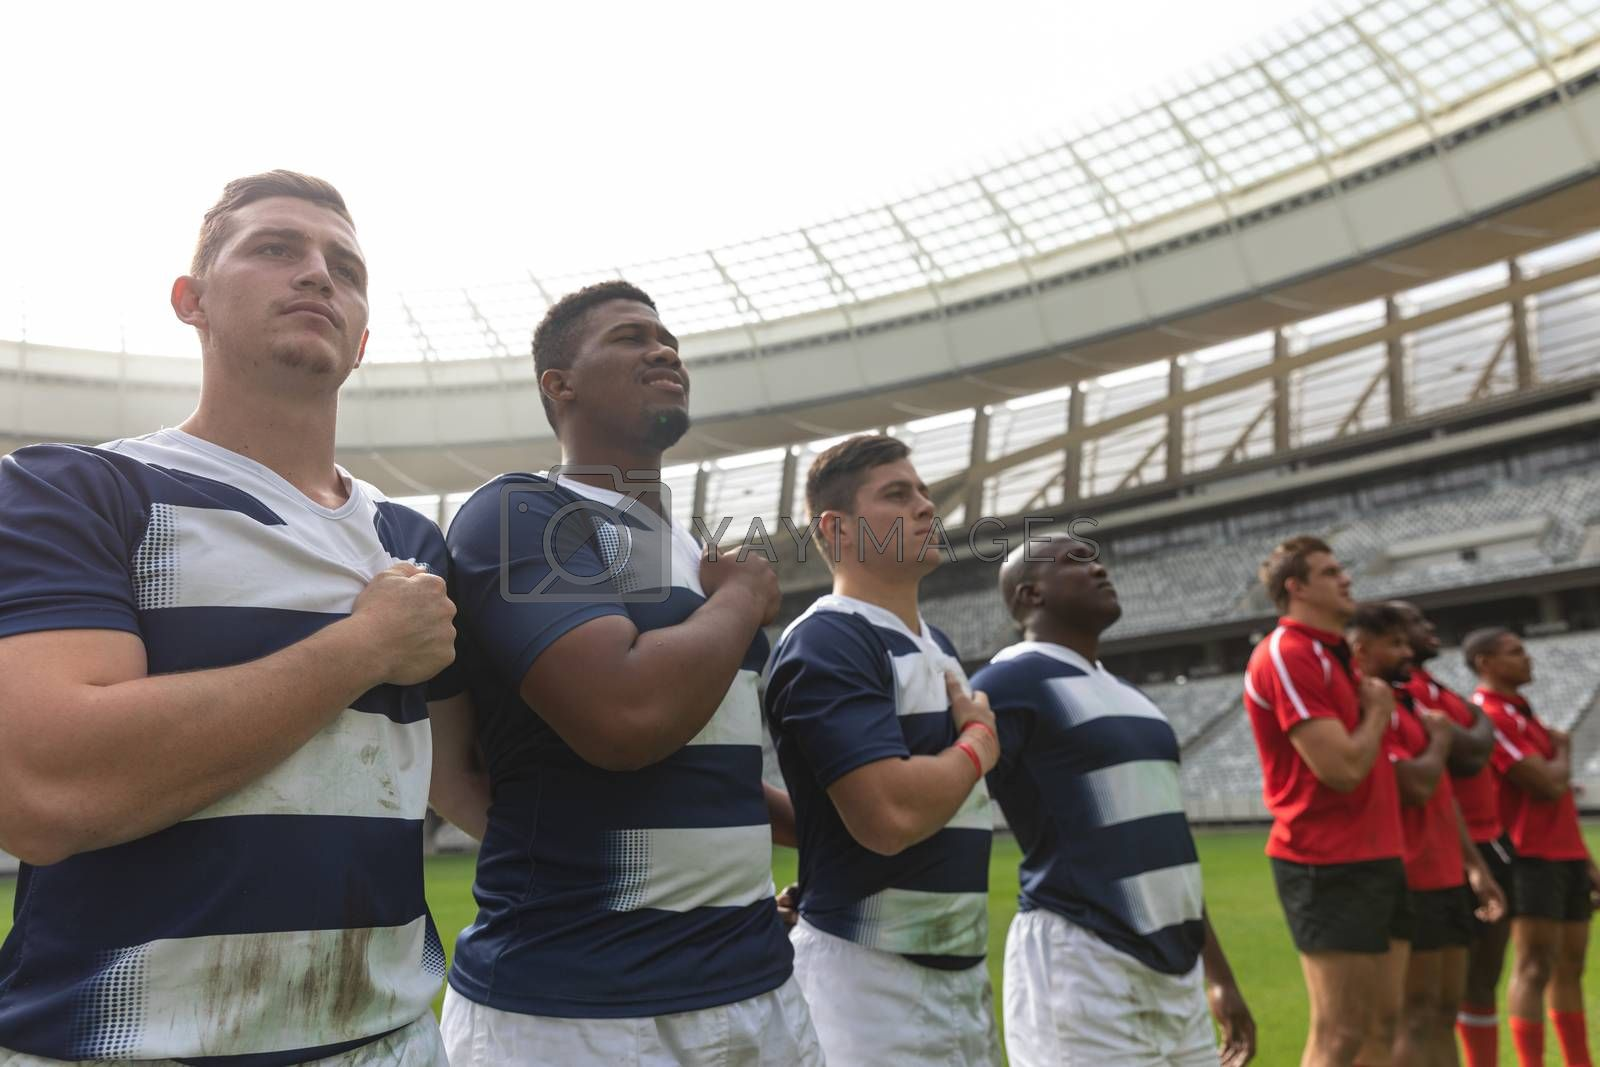 Front view of proud diverse male rugby team taking pledge together in stadium